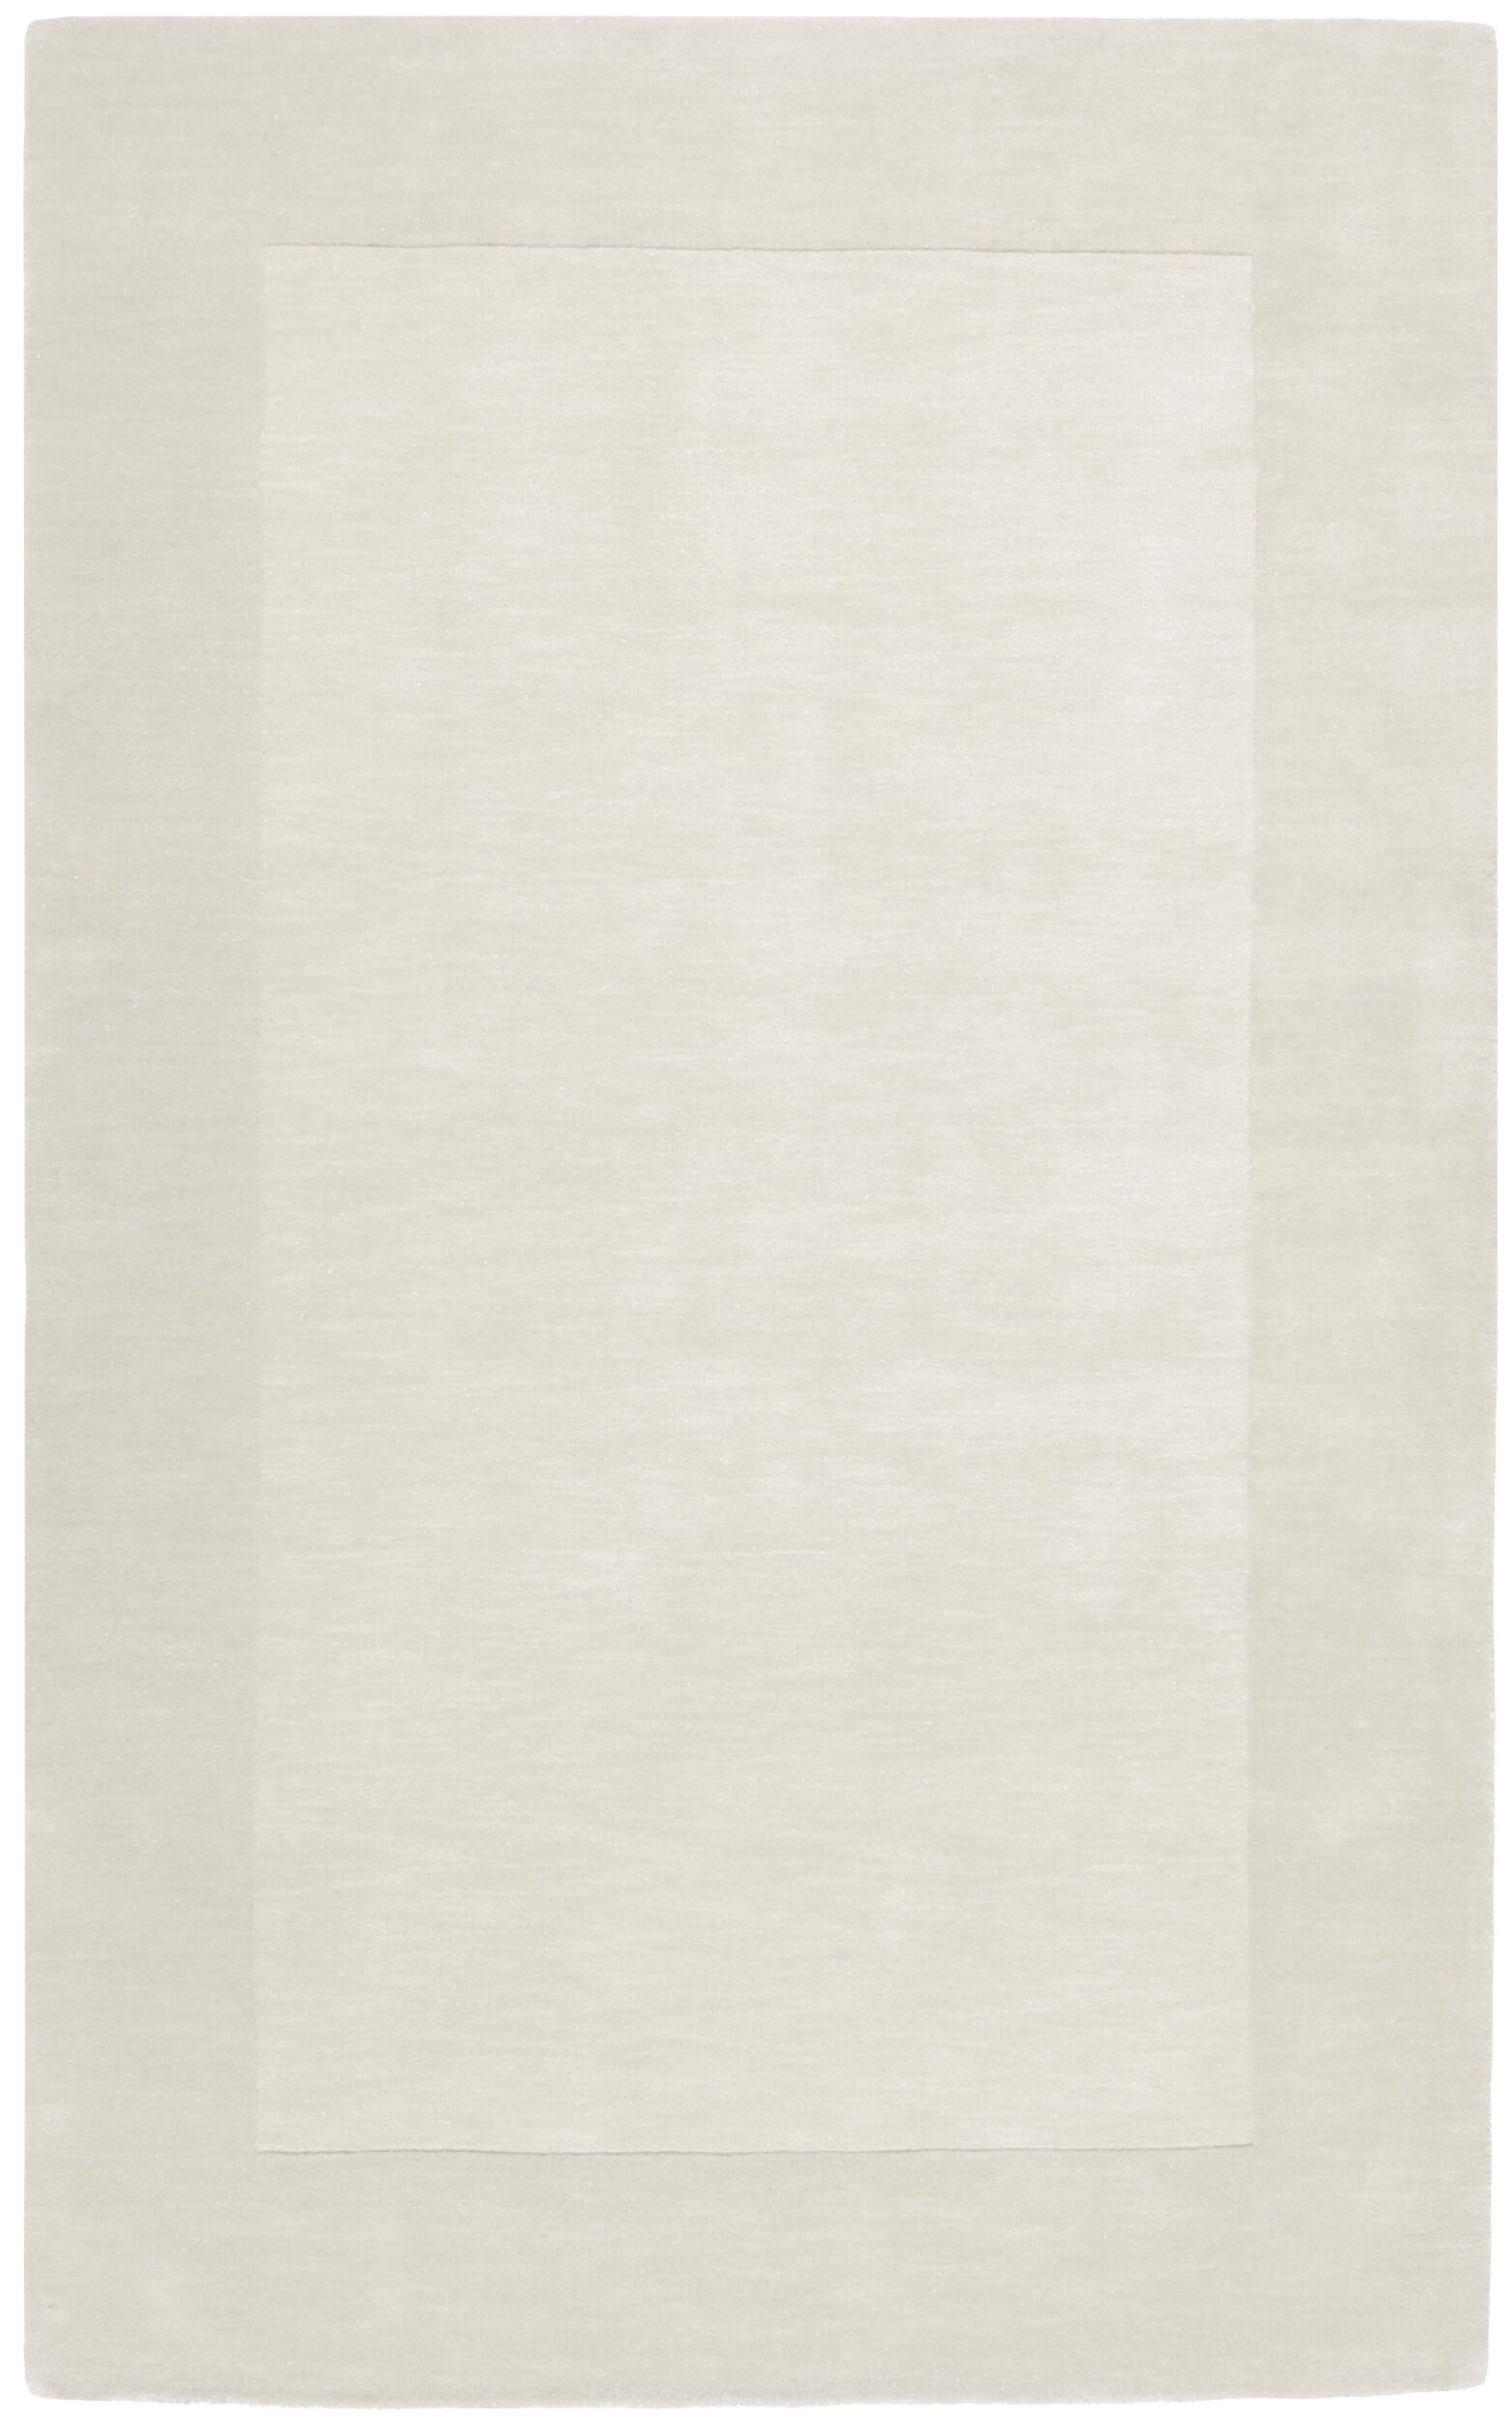 Bradley Hand Woven Winter White Area Rug Rug Size: Rectangle 6' x 9'